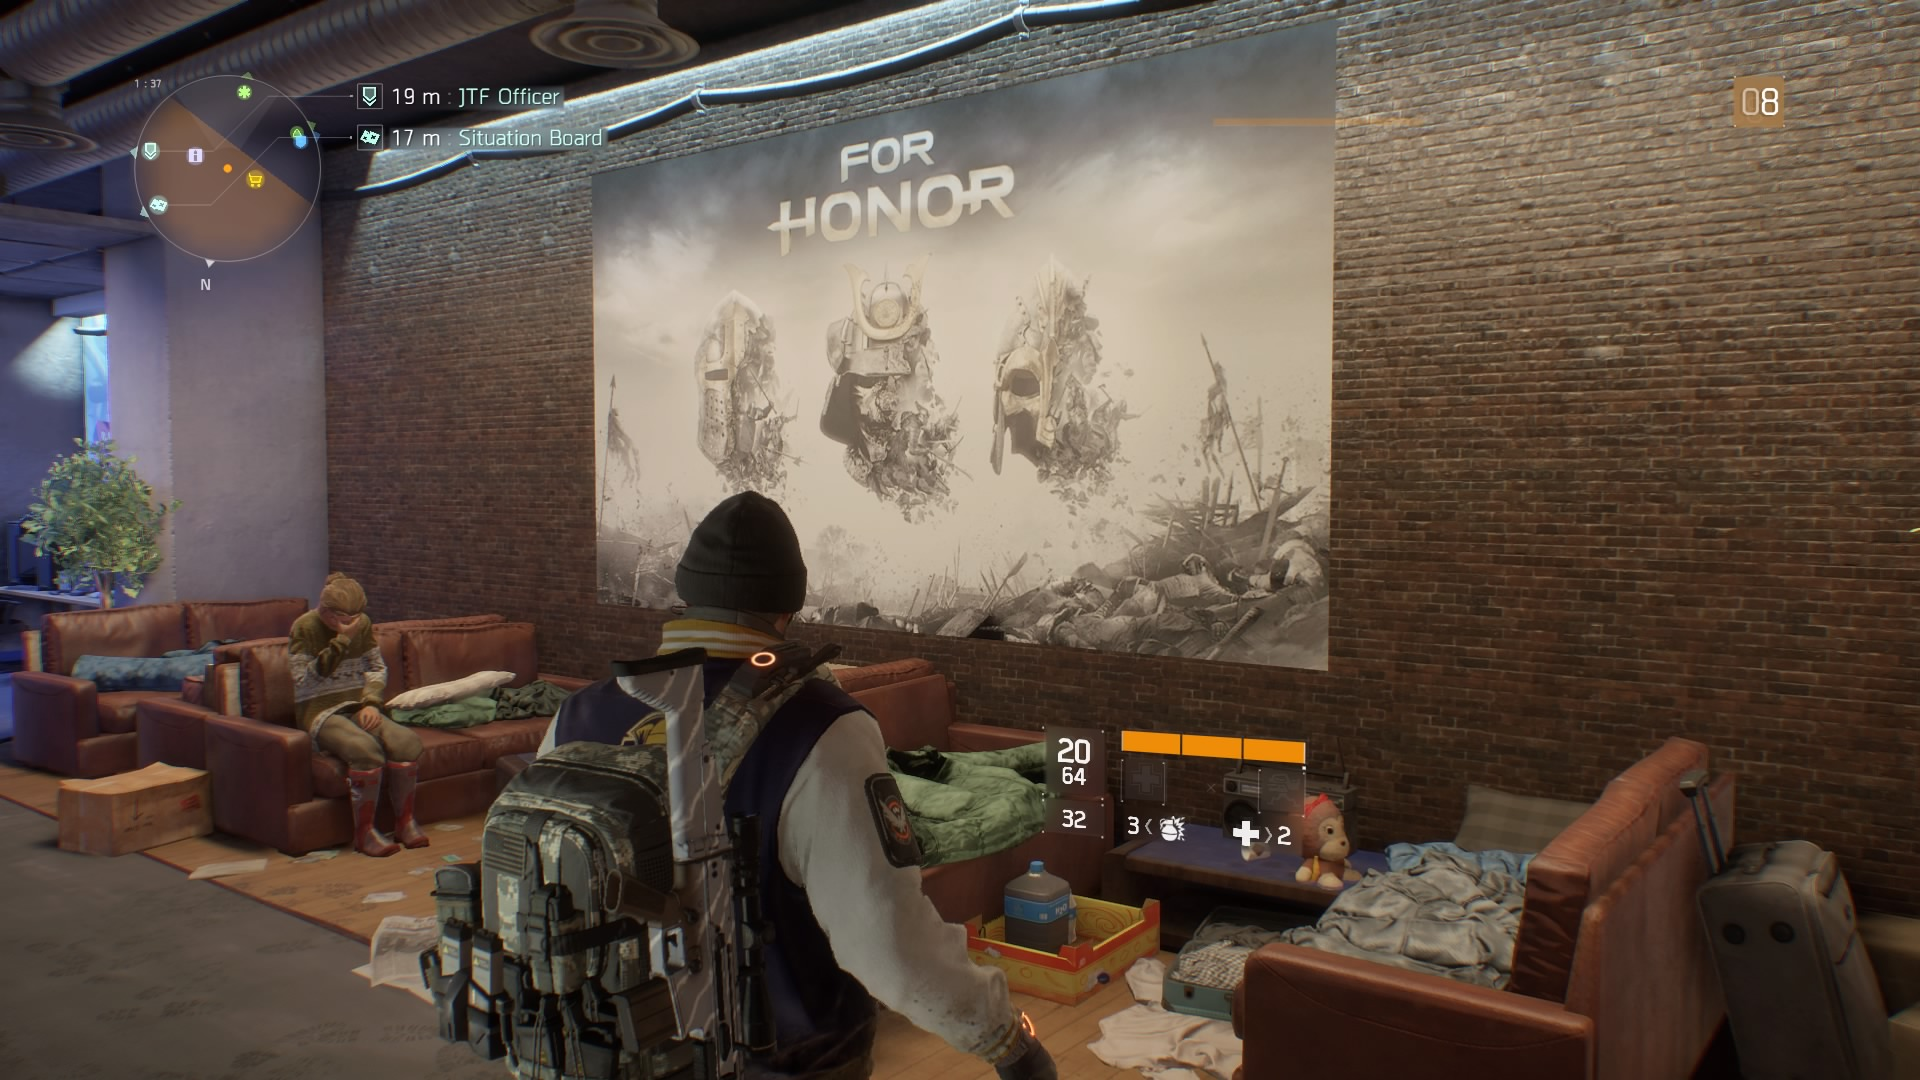 Tom Clancys The Division™ 20160308203410 1 The Division Has A Great Easter Egg That Looks To Future Games